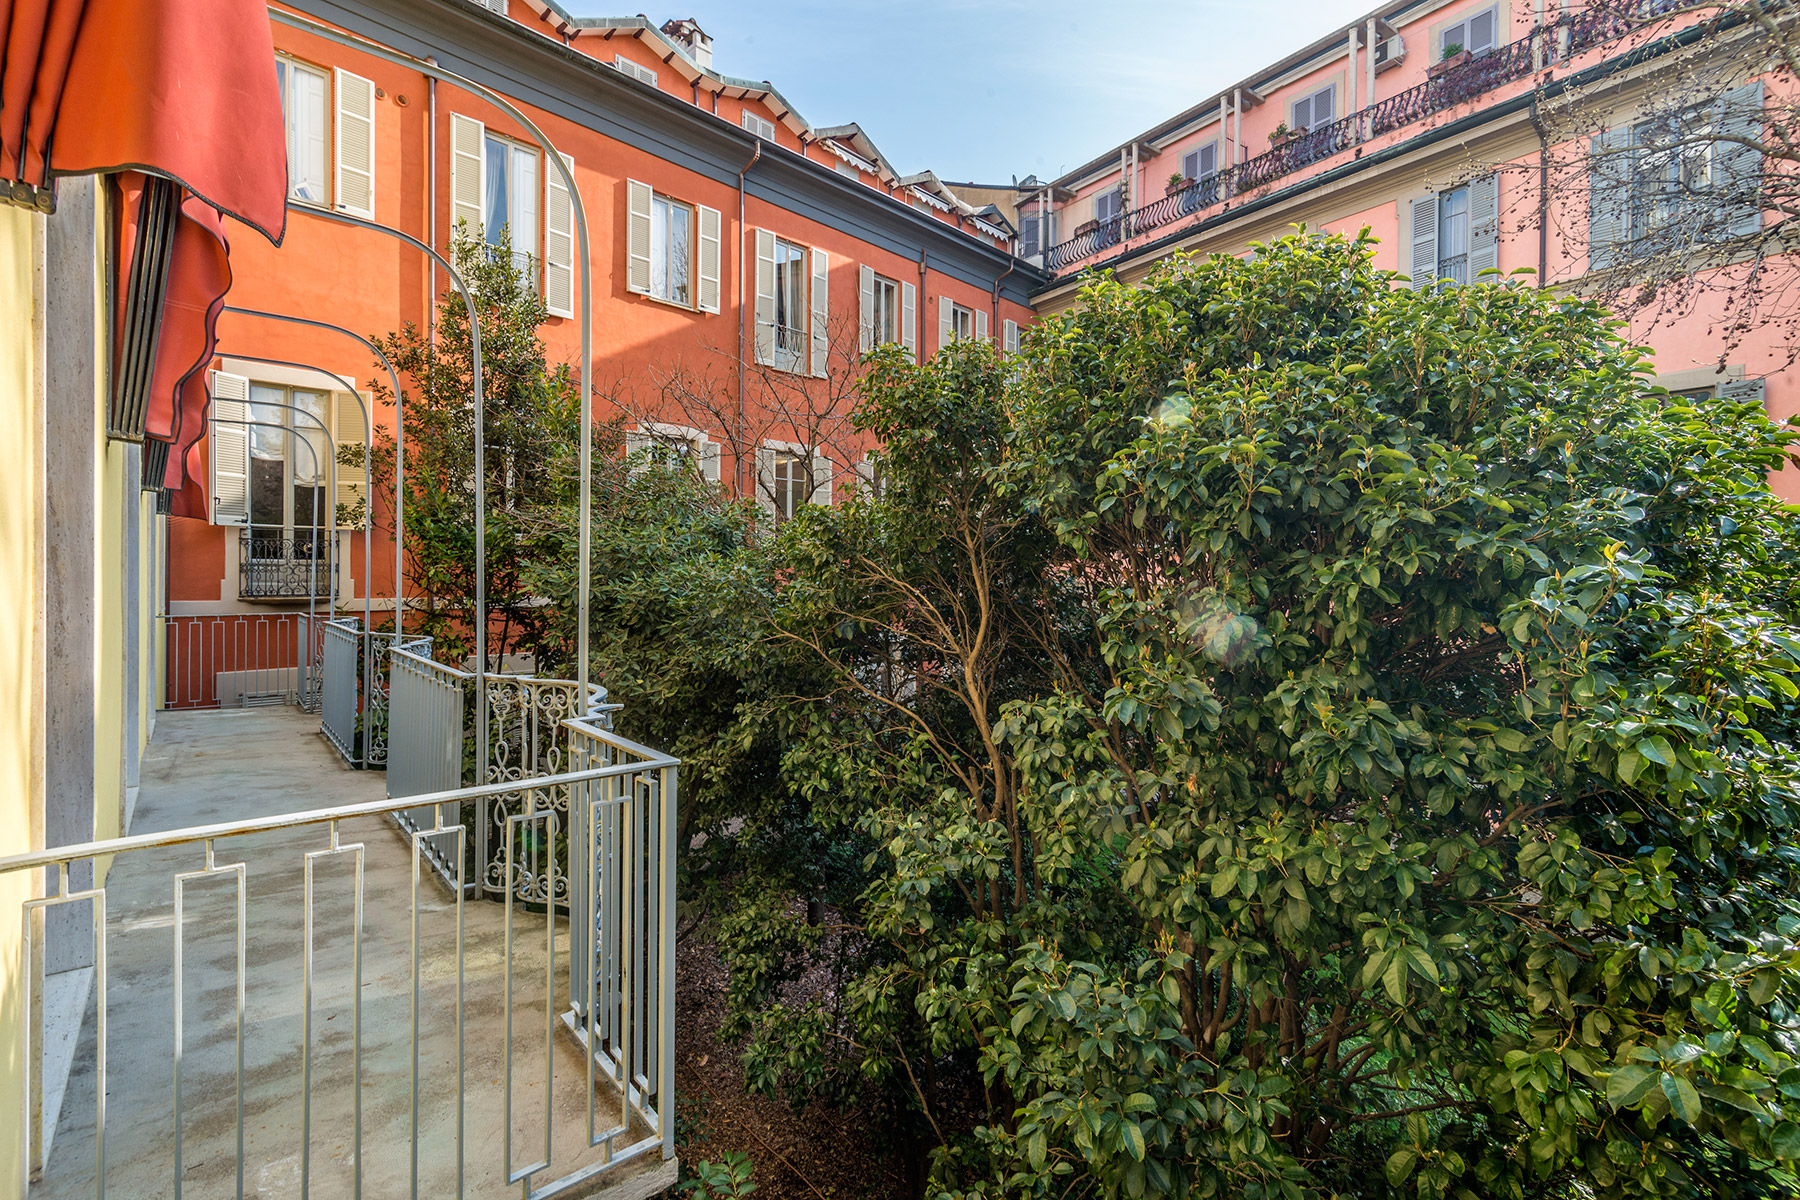 Additional photo for property listing at Elegant apartment near the Opera Theatre Alla Scala Via Manzoni Milano, Milan 20121 Italia